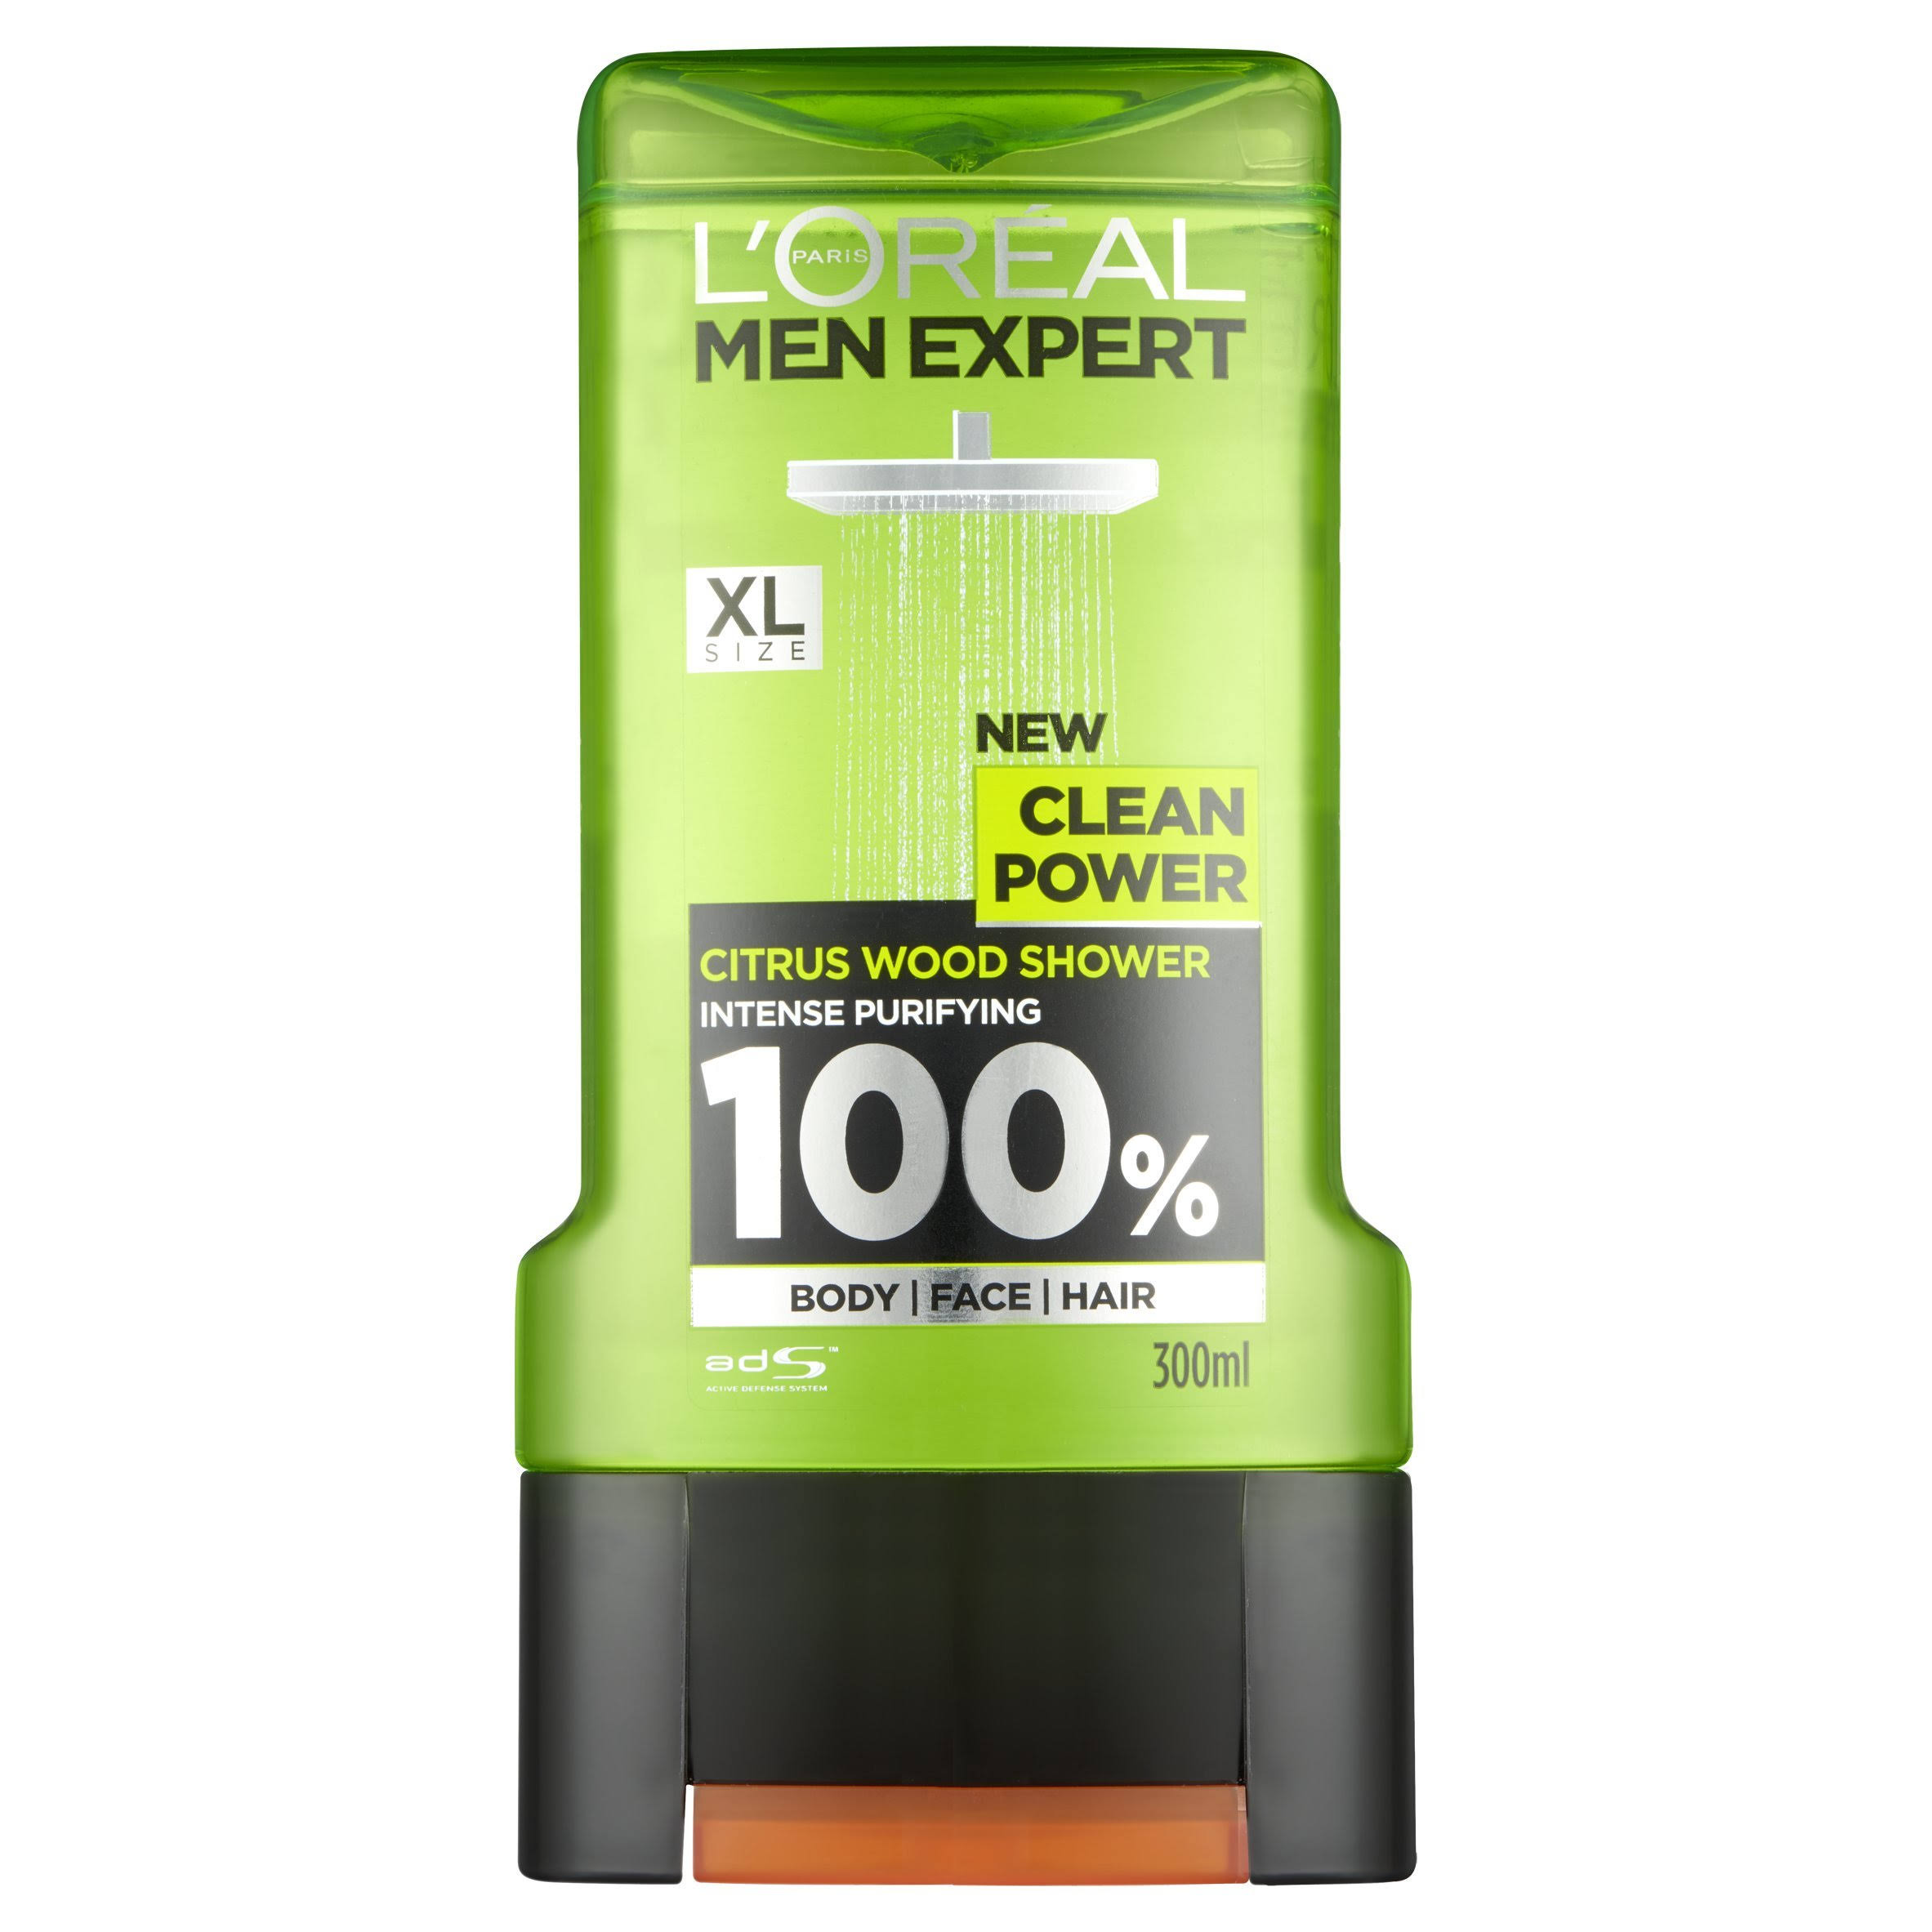 L'Oreal Men Expert Clean Power Shower Gel - Citrus Wood, 300ml